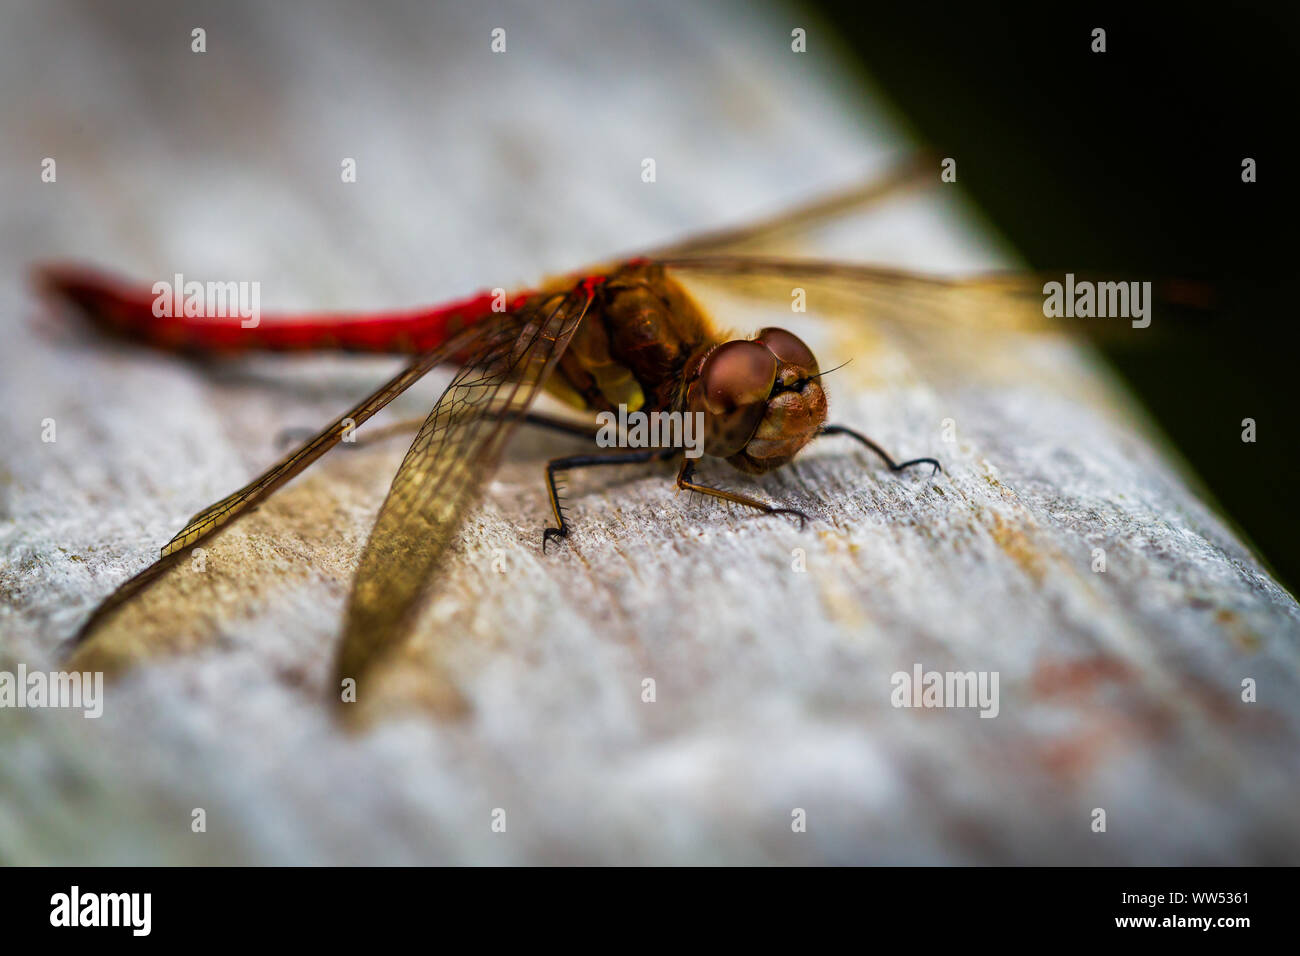 The Red Dragonfly, also known as Red-Veined Darter or Nomad is technically known as Sympetrum Fonscolombii, and belongs to the Sympetrum genus Stock Photo